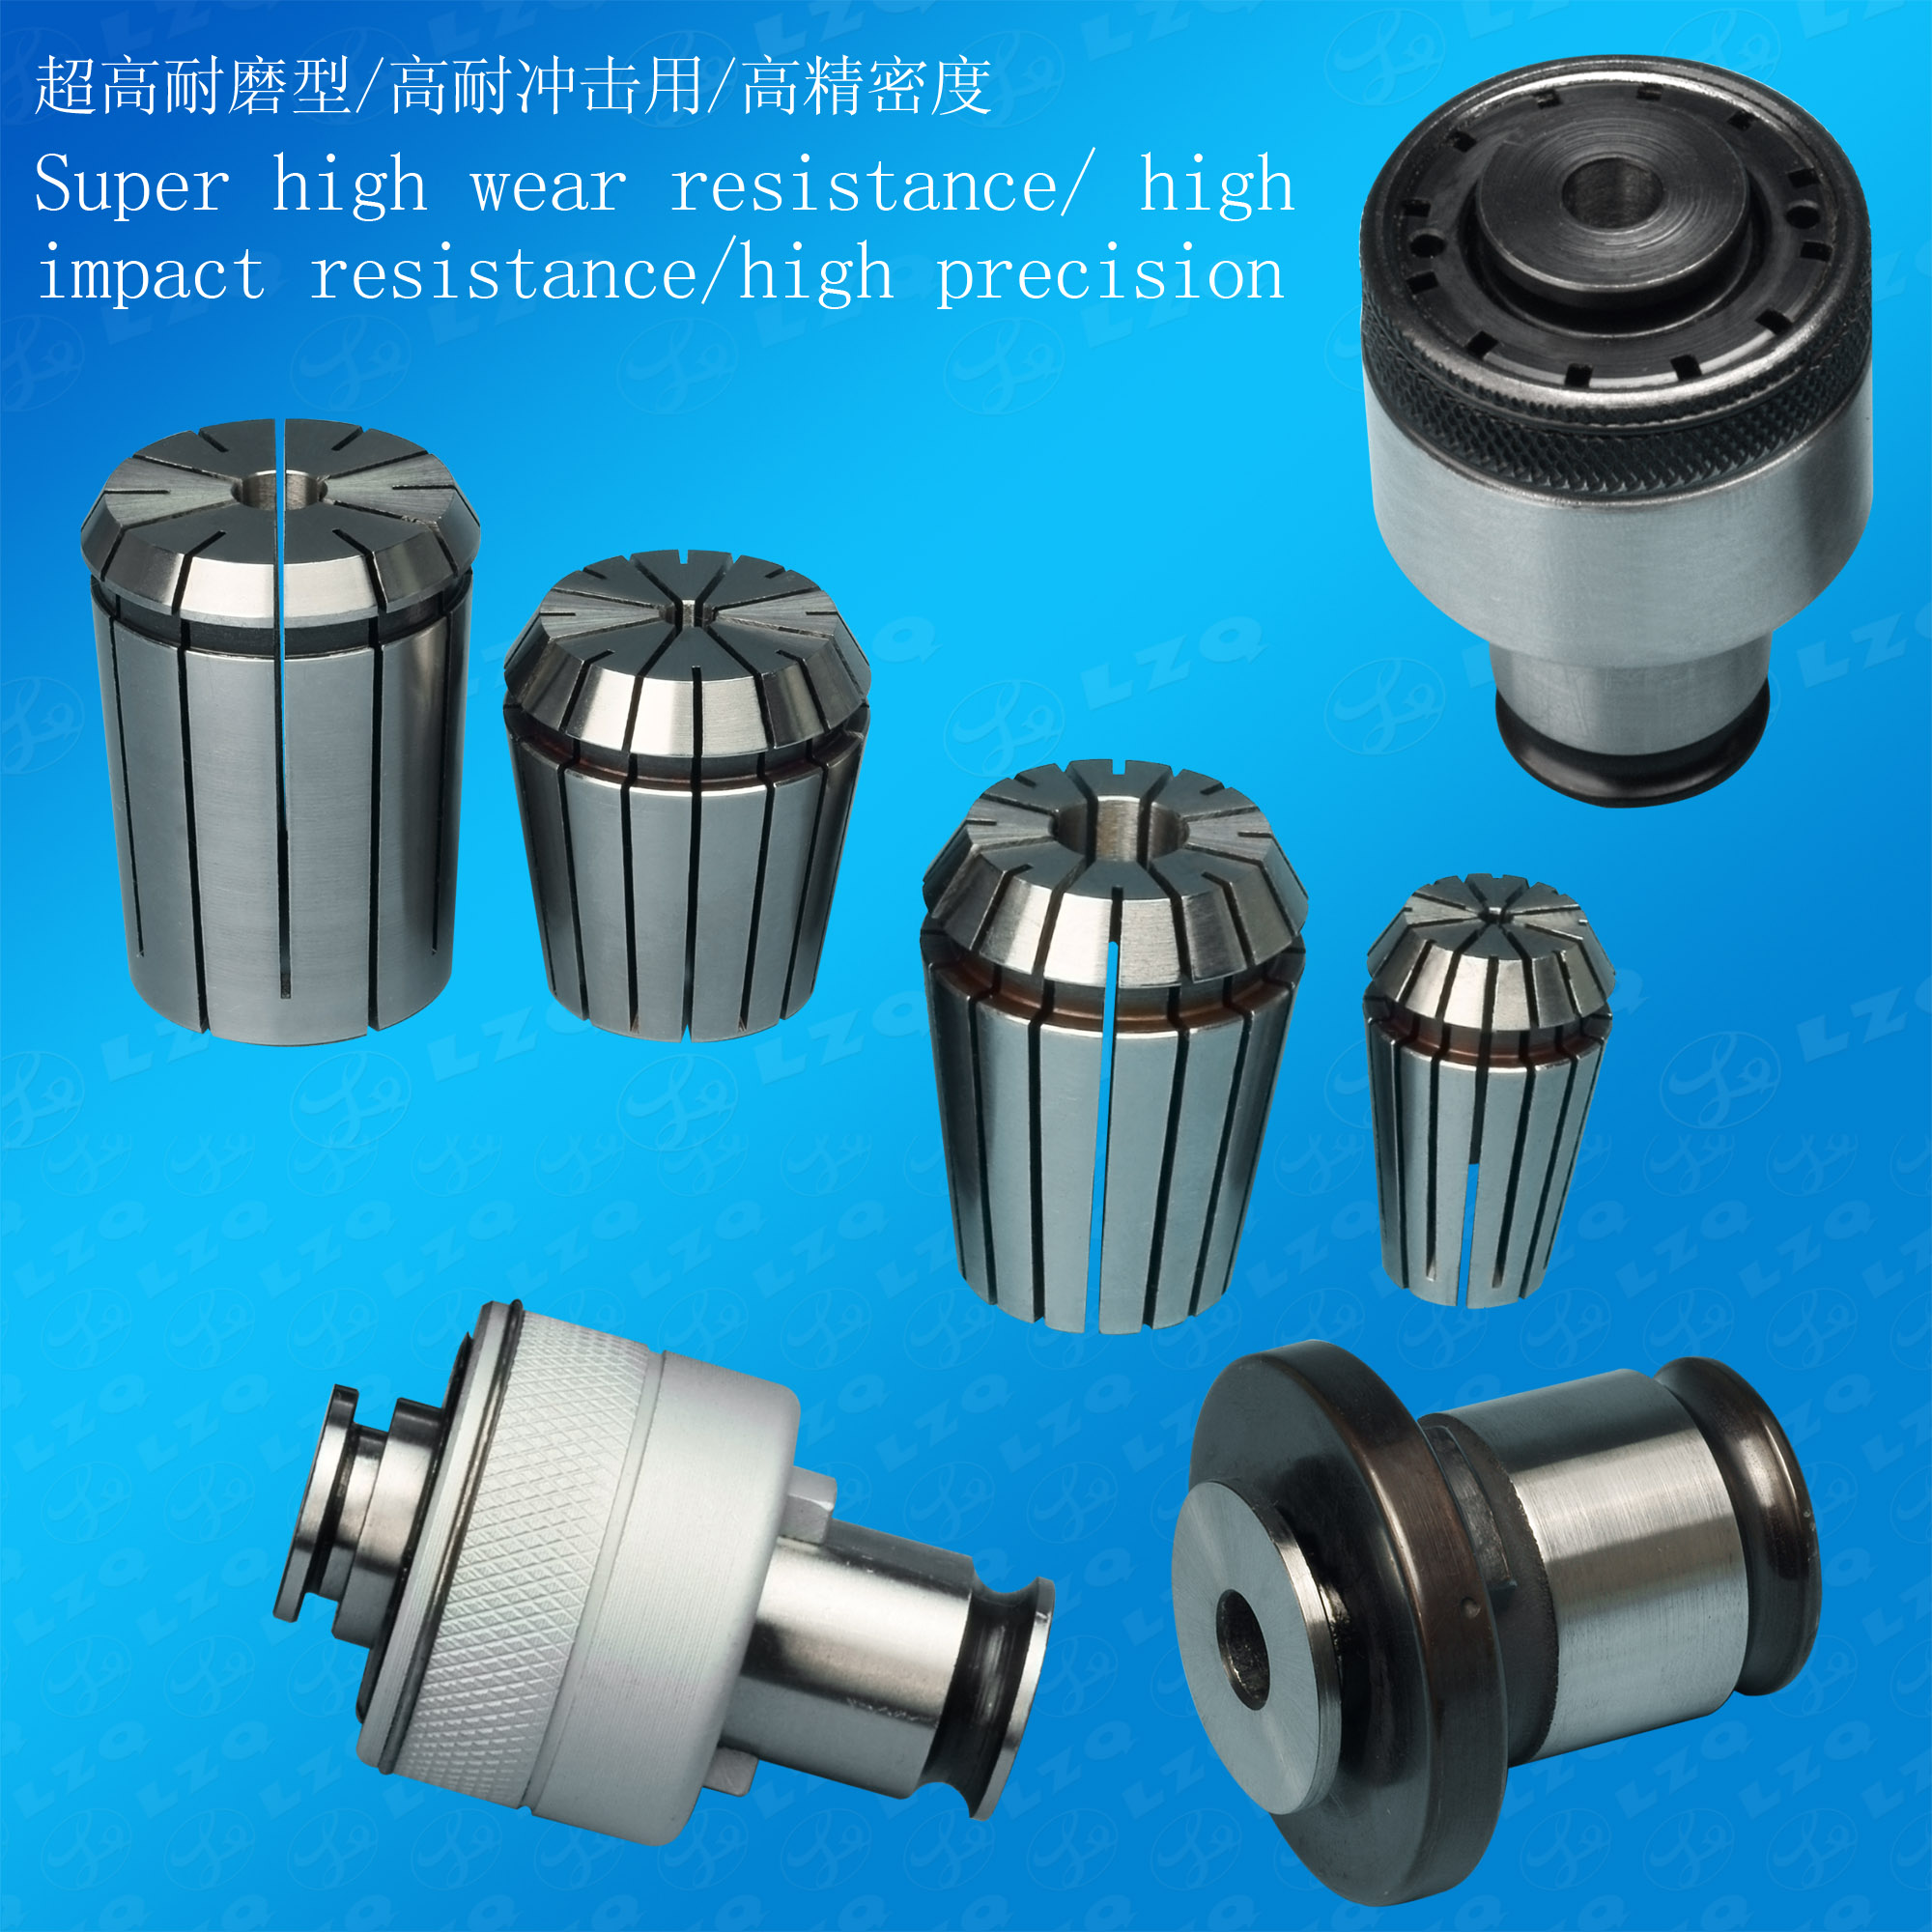 Collet, Chuck, Clamping, ISOK15A-1, HSS-D